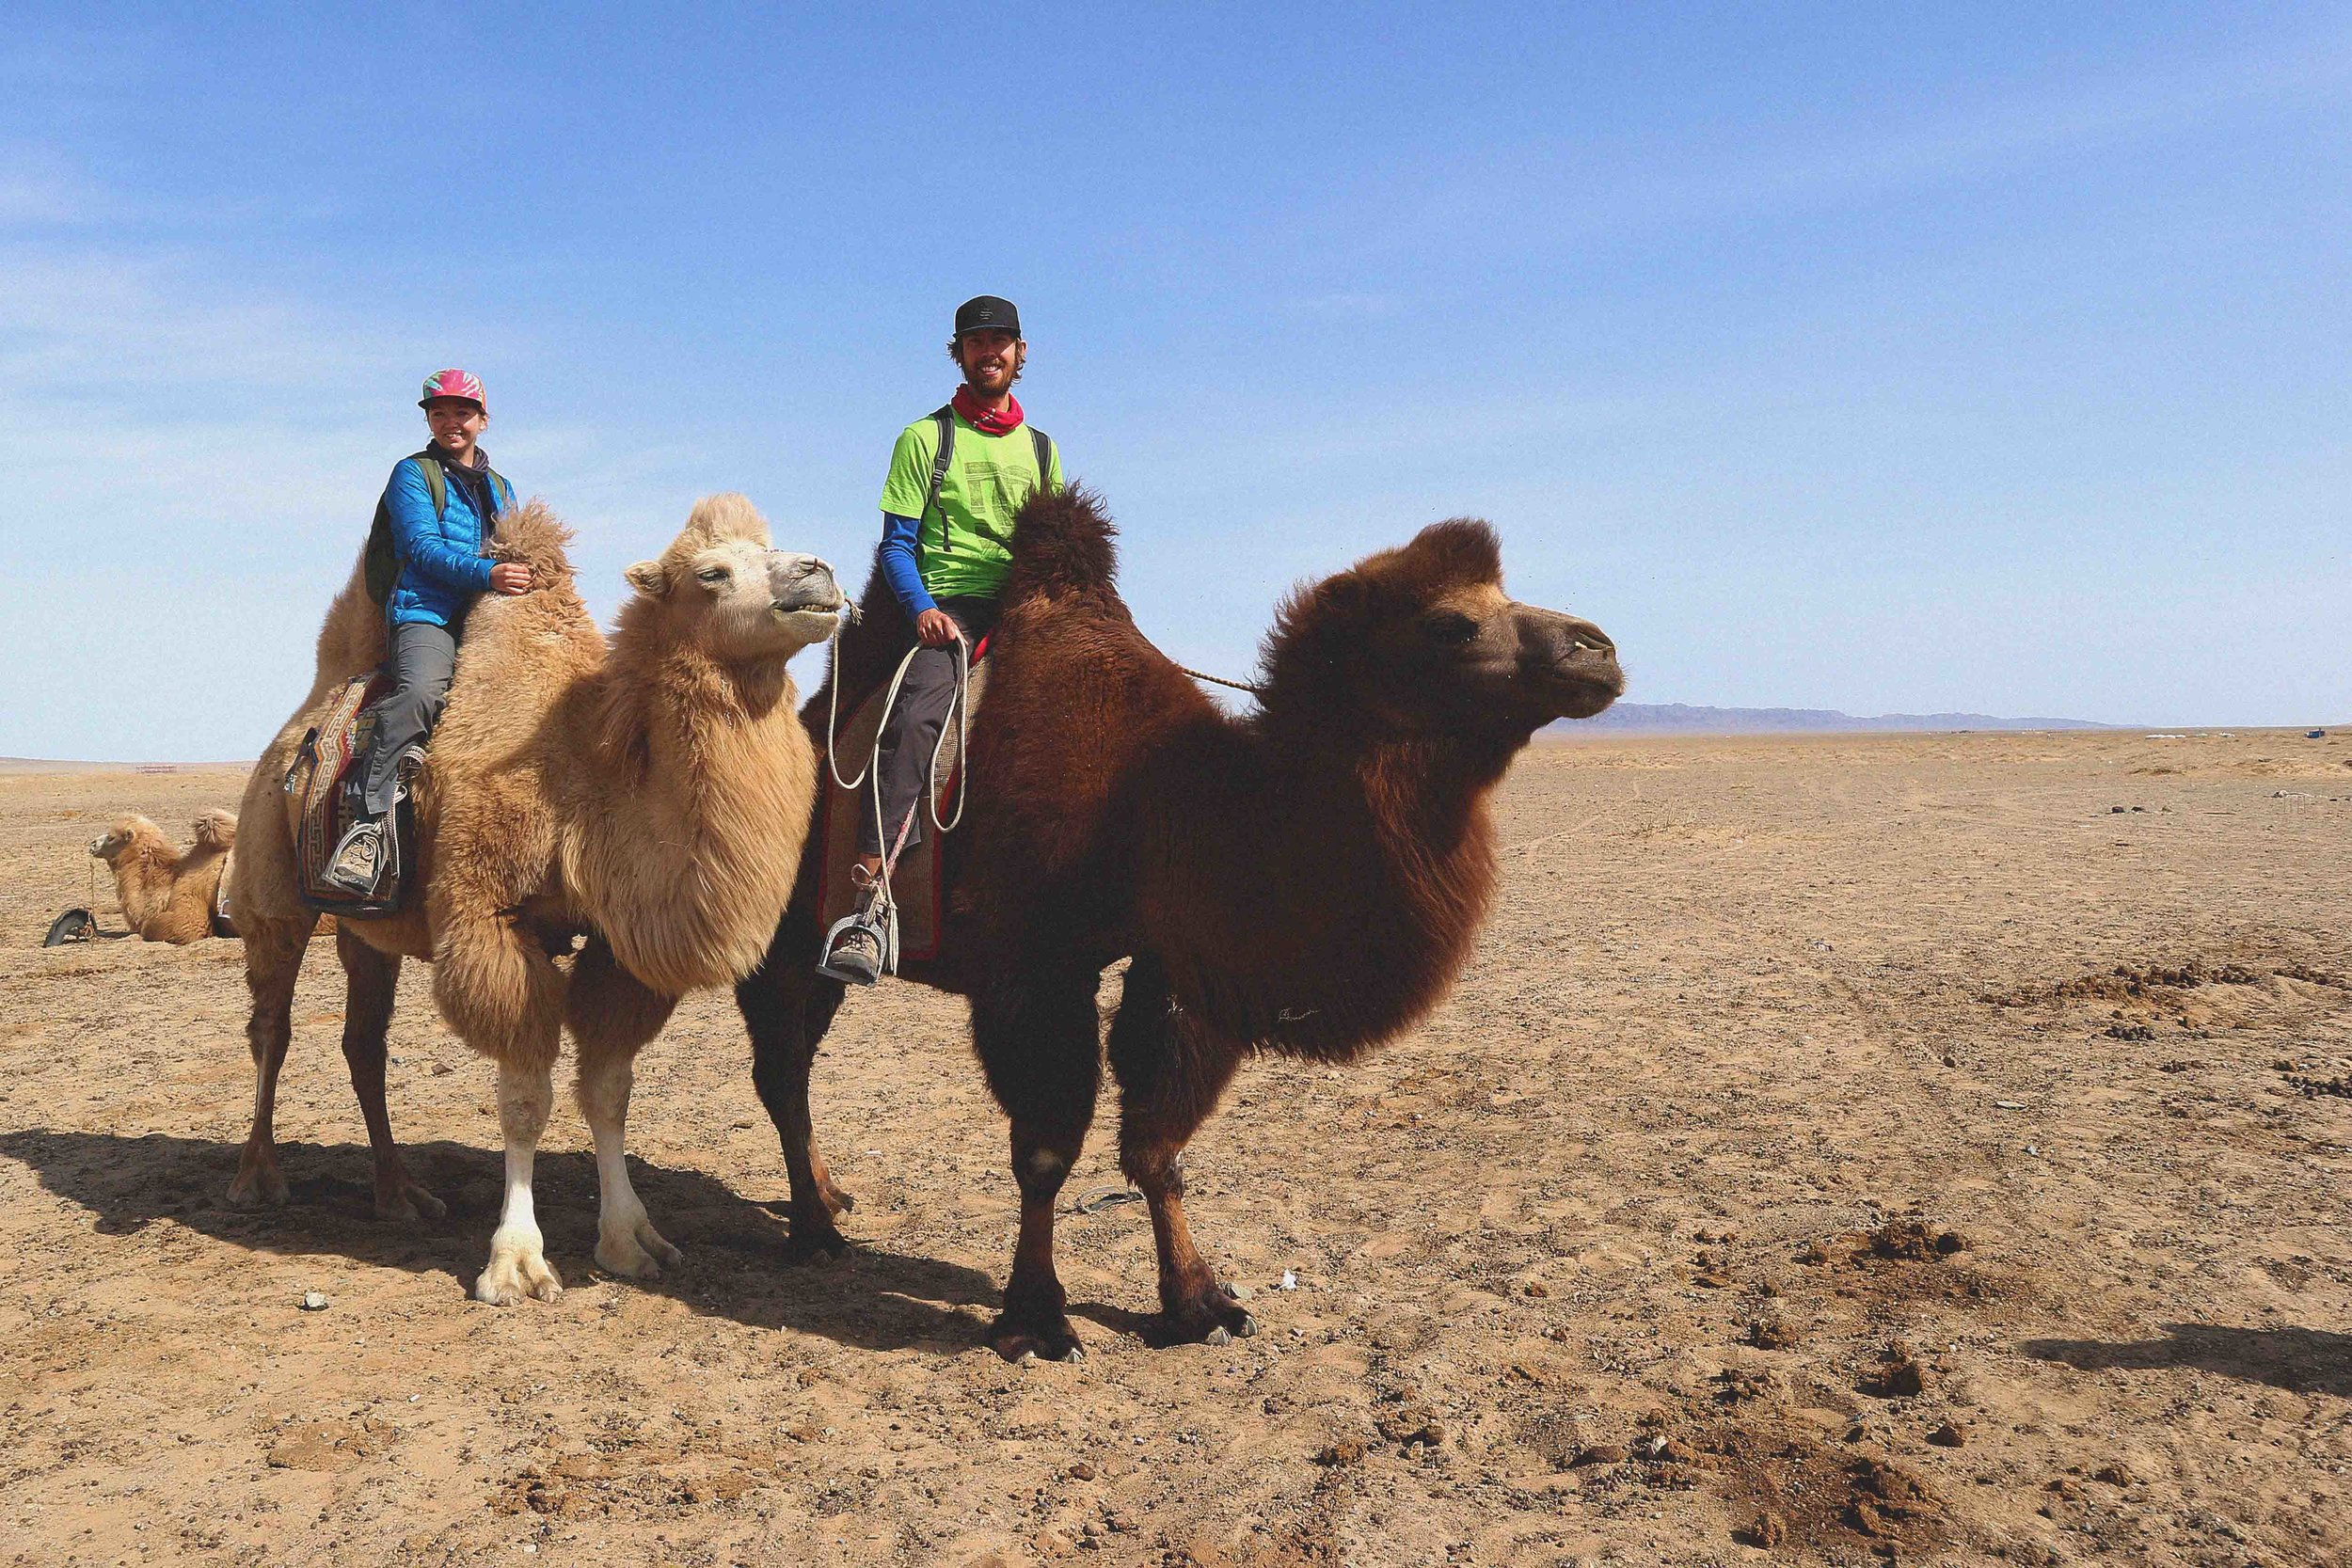 Our camel ride to the sand dunes in the gobi desert